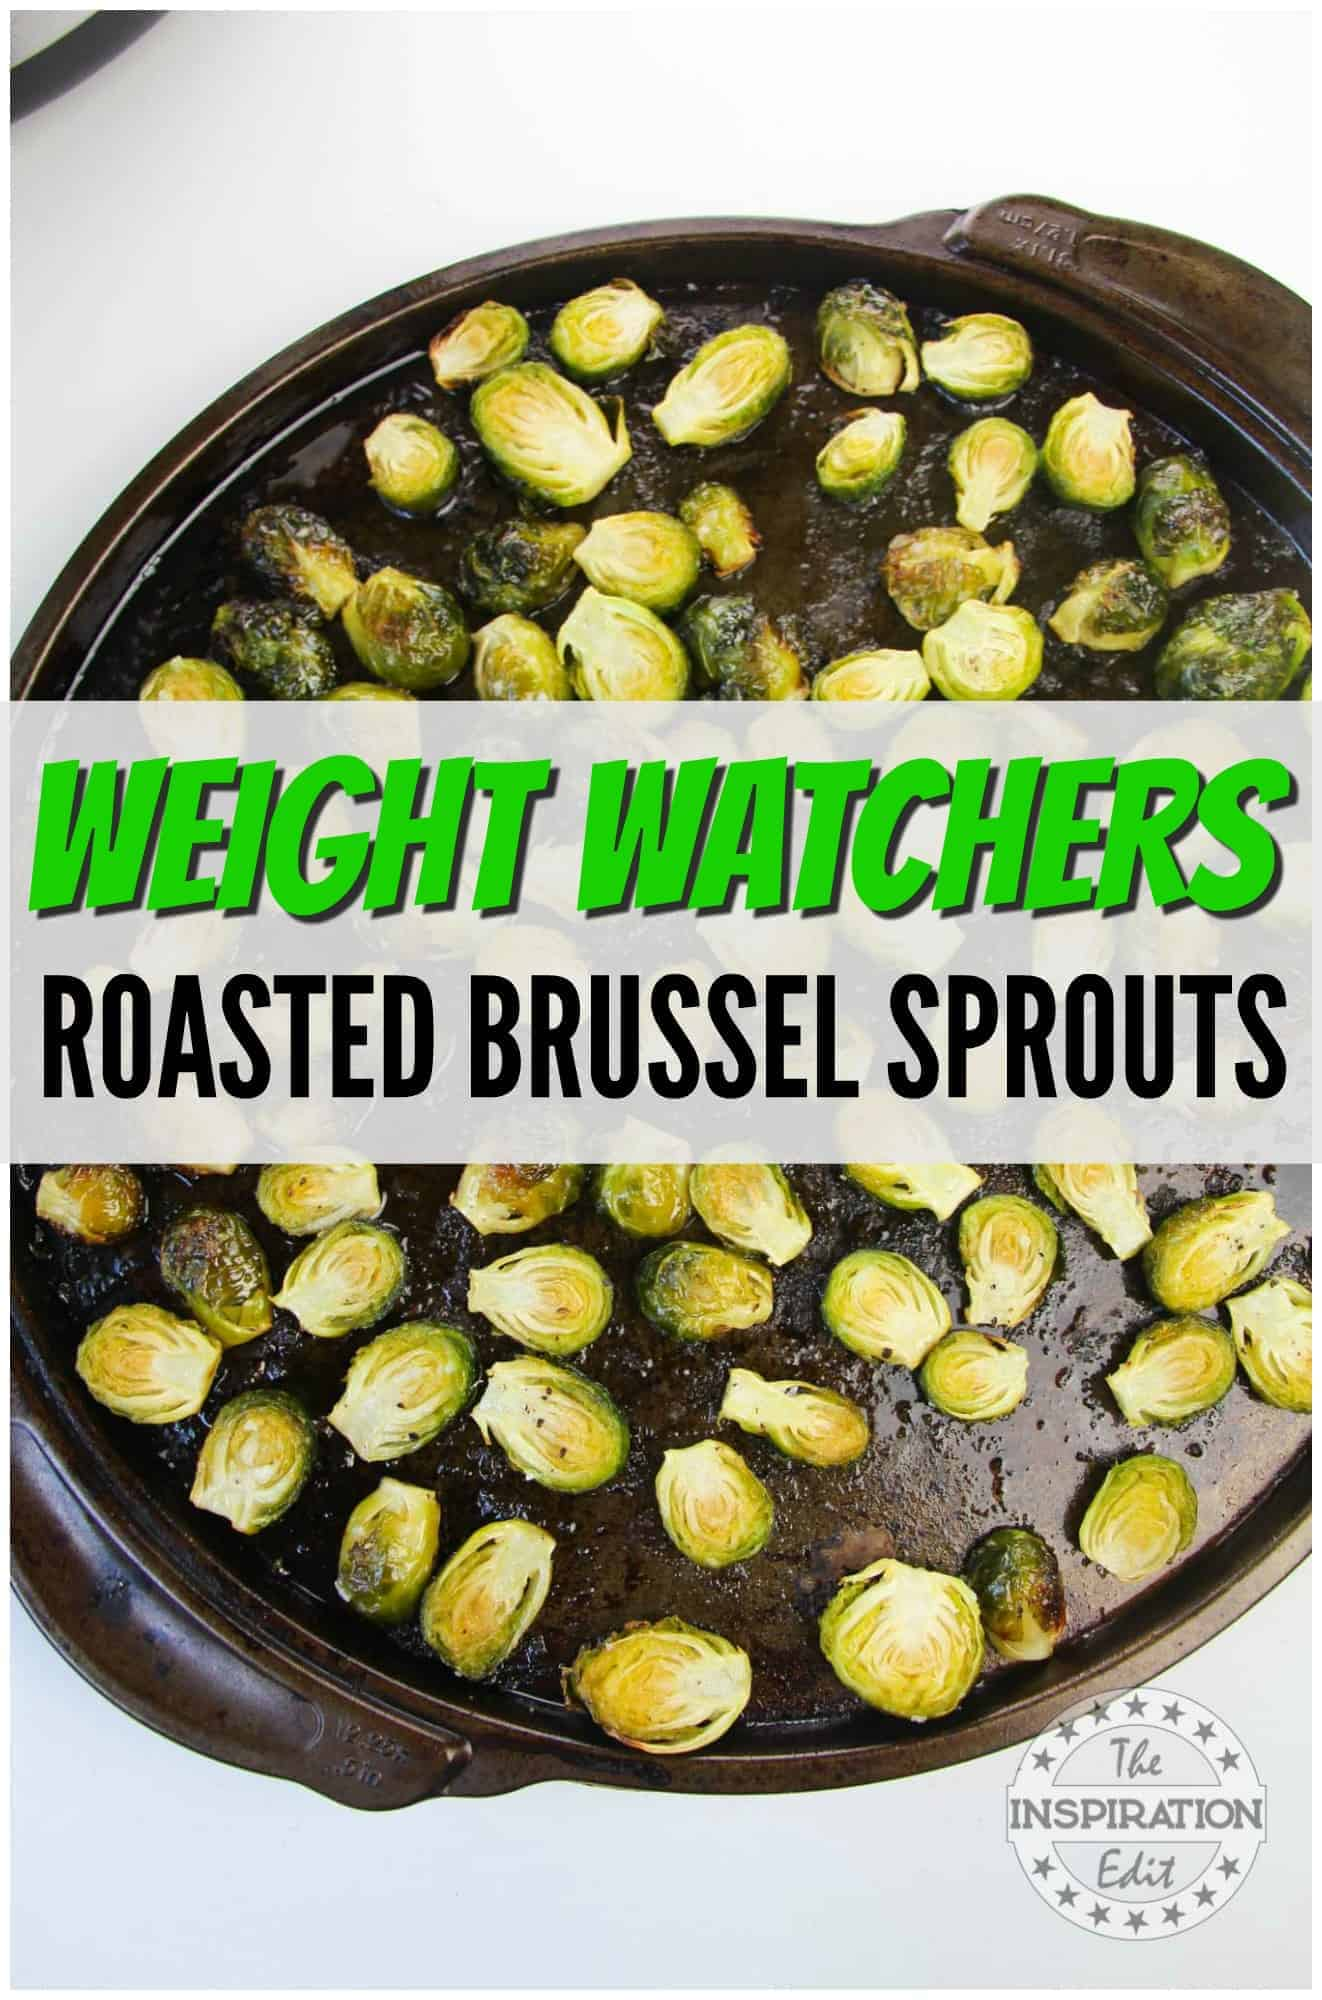 weight watchers brussel sprouts recipe